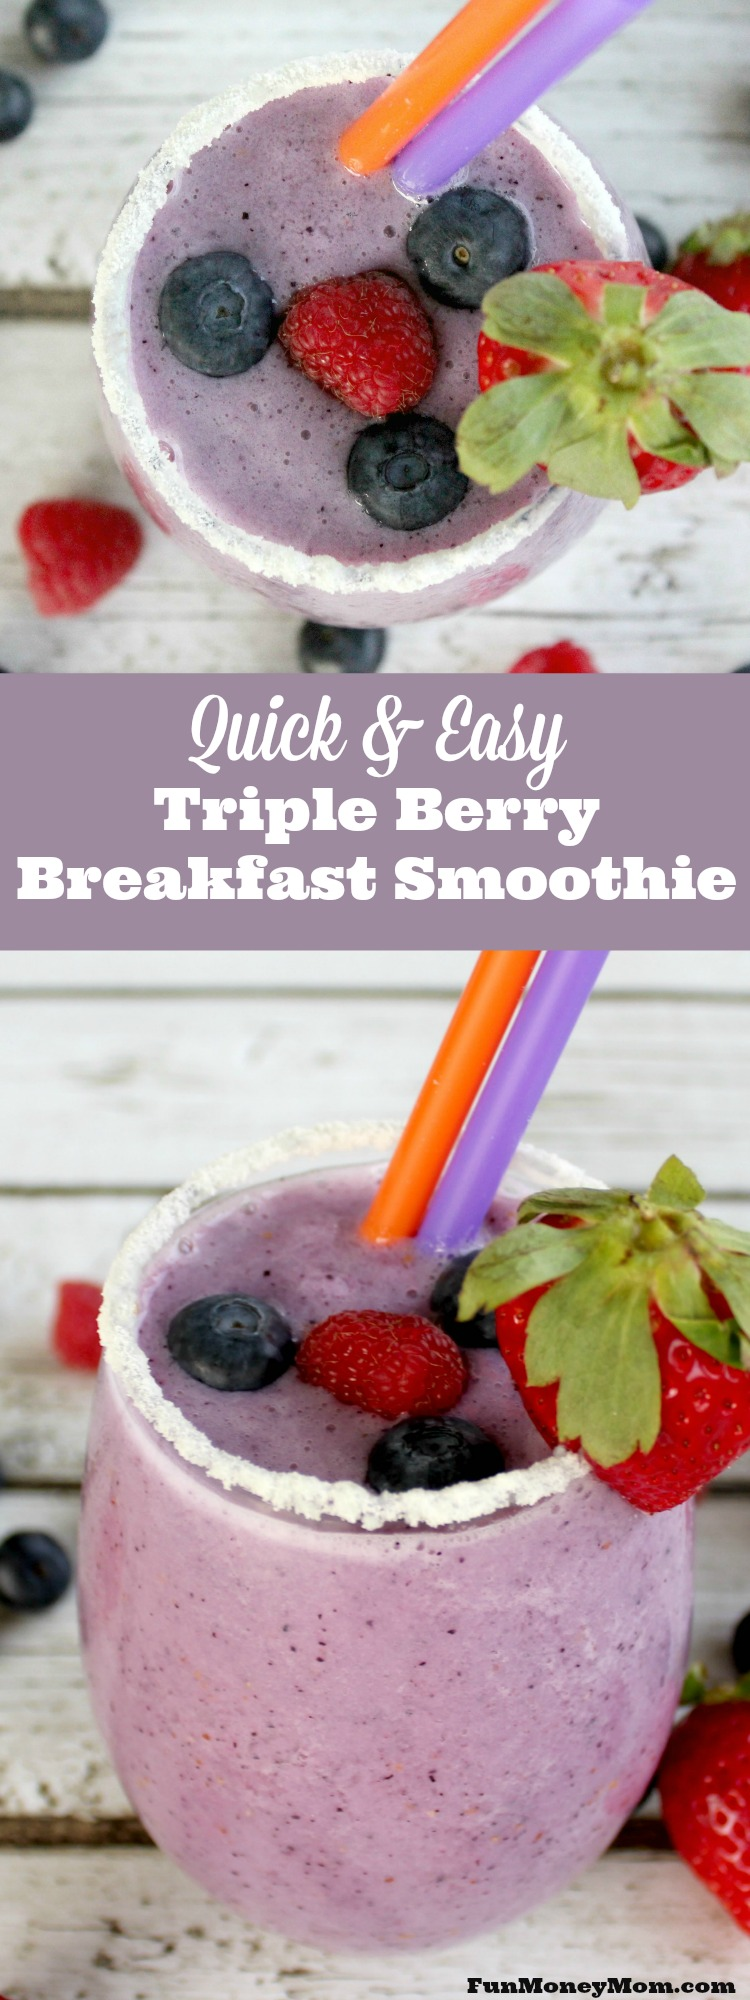 Need a quick breakfast that's healthy too? This super easy triple berry smoothie will help get you out the door on time